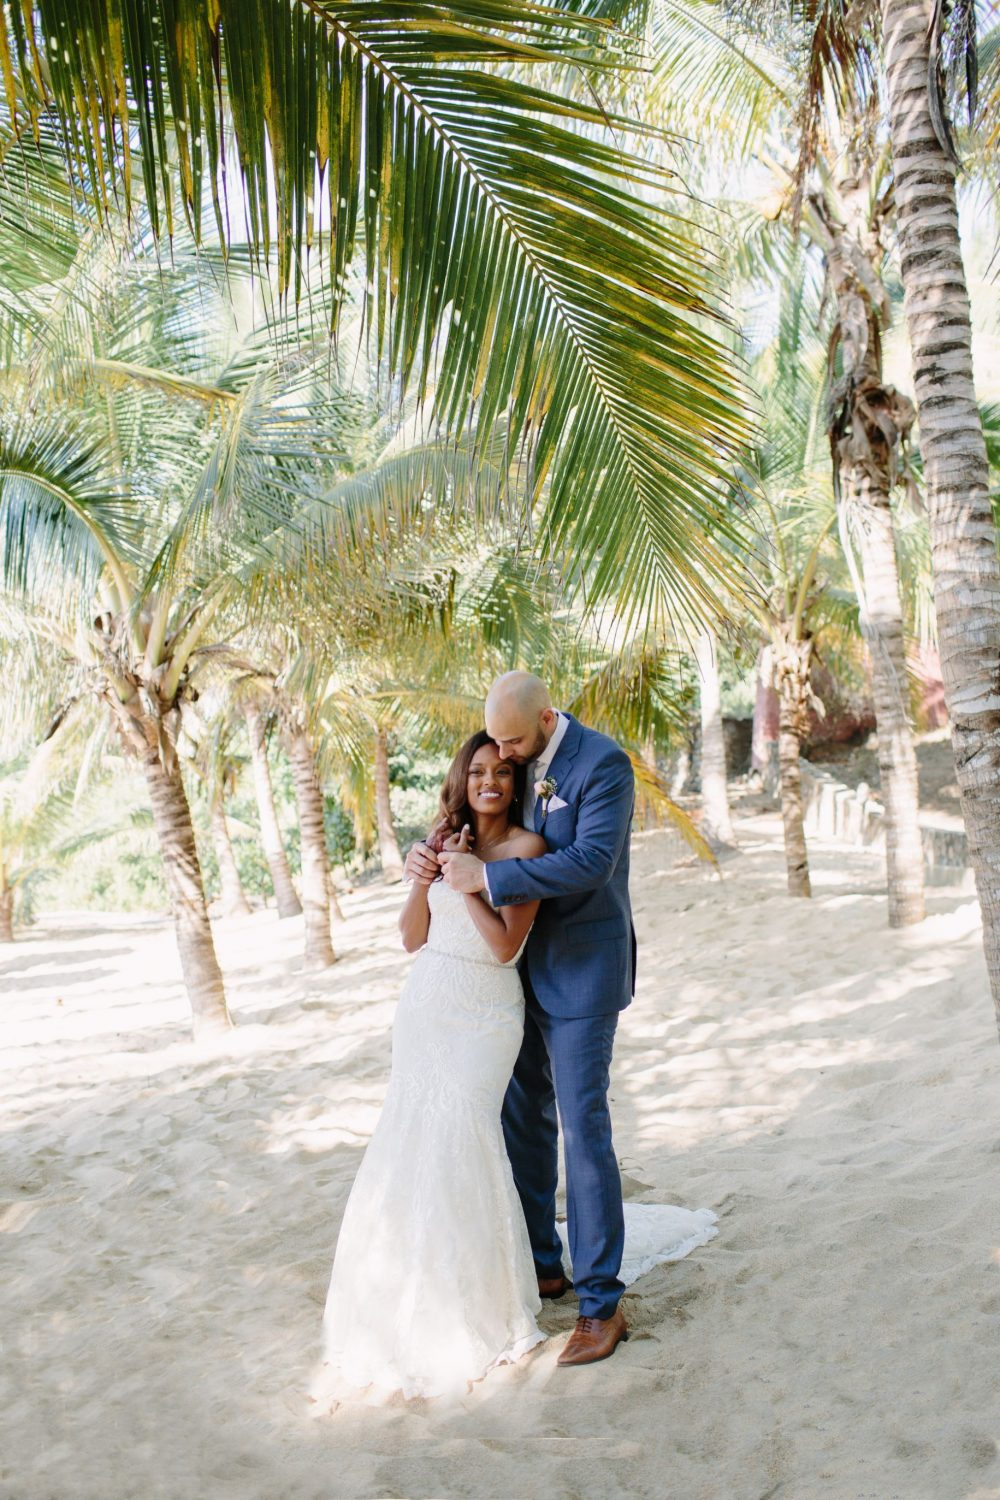 the bride and groom hug on the beach under the palm trees during their first look at this Sayulita Mexico destination wedding